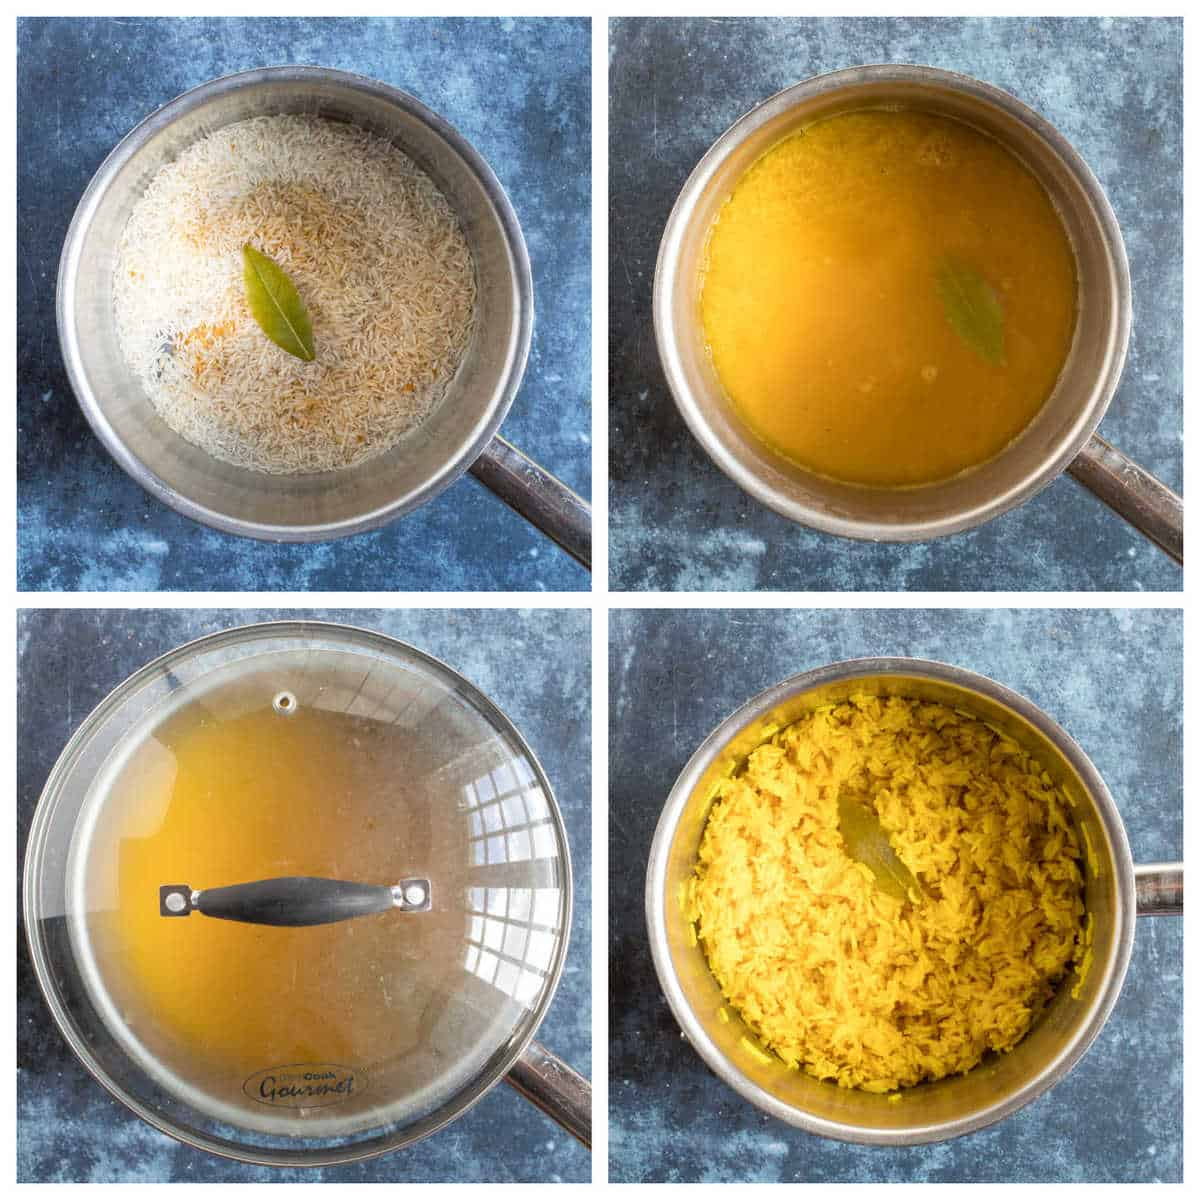 Step by step photo instructions for making turmeric rice